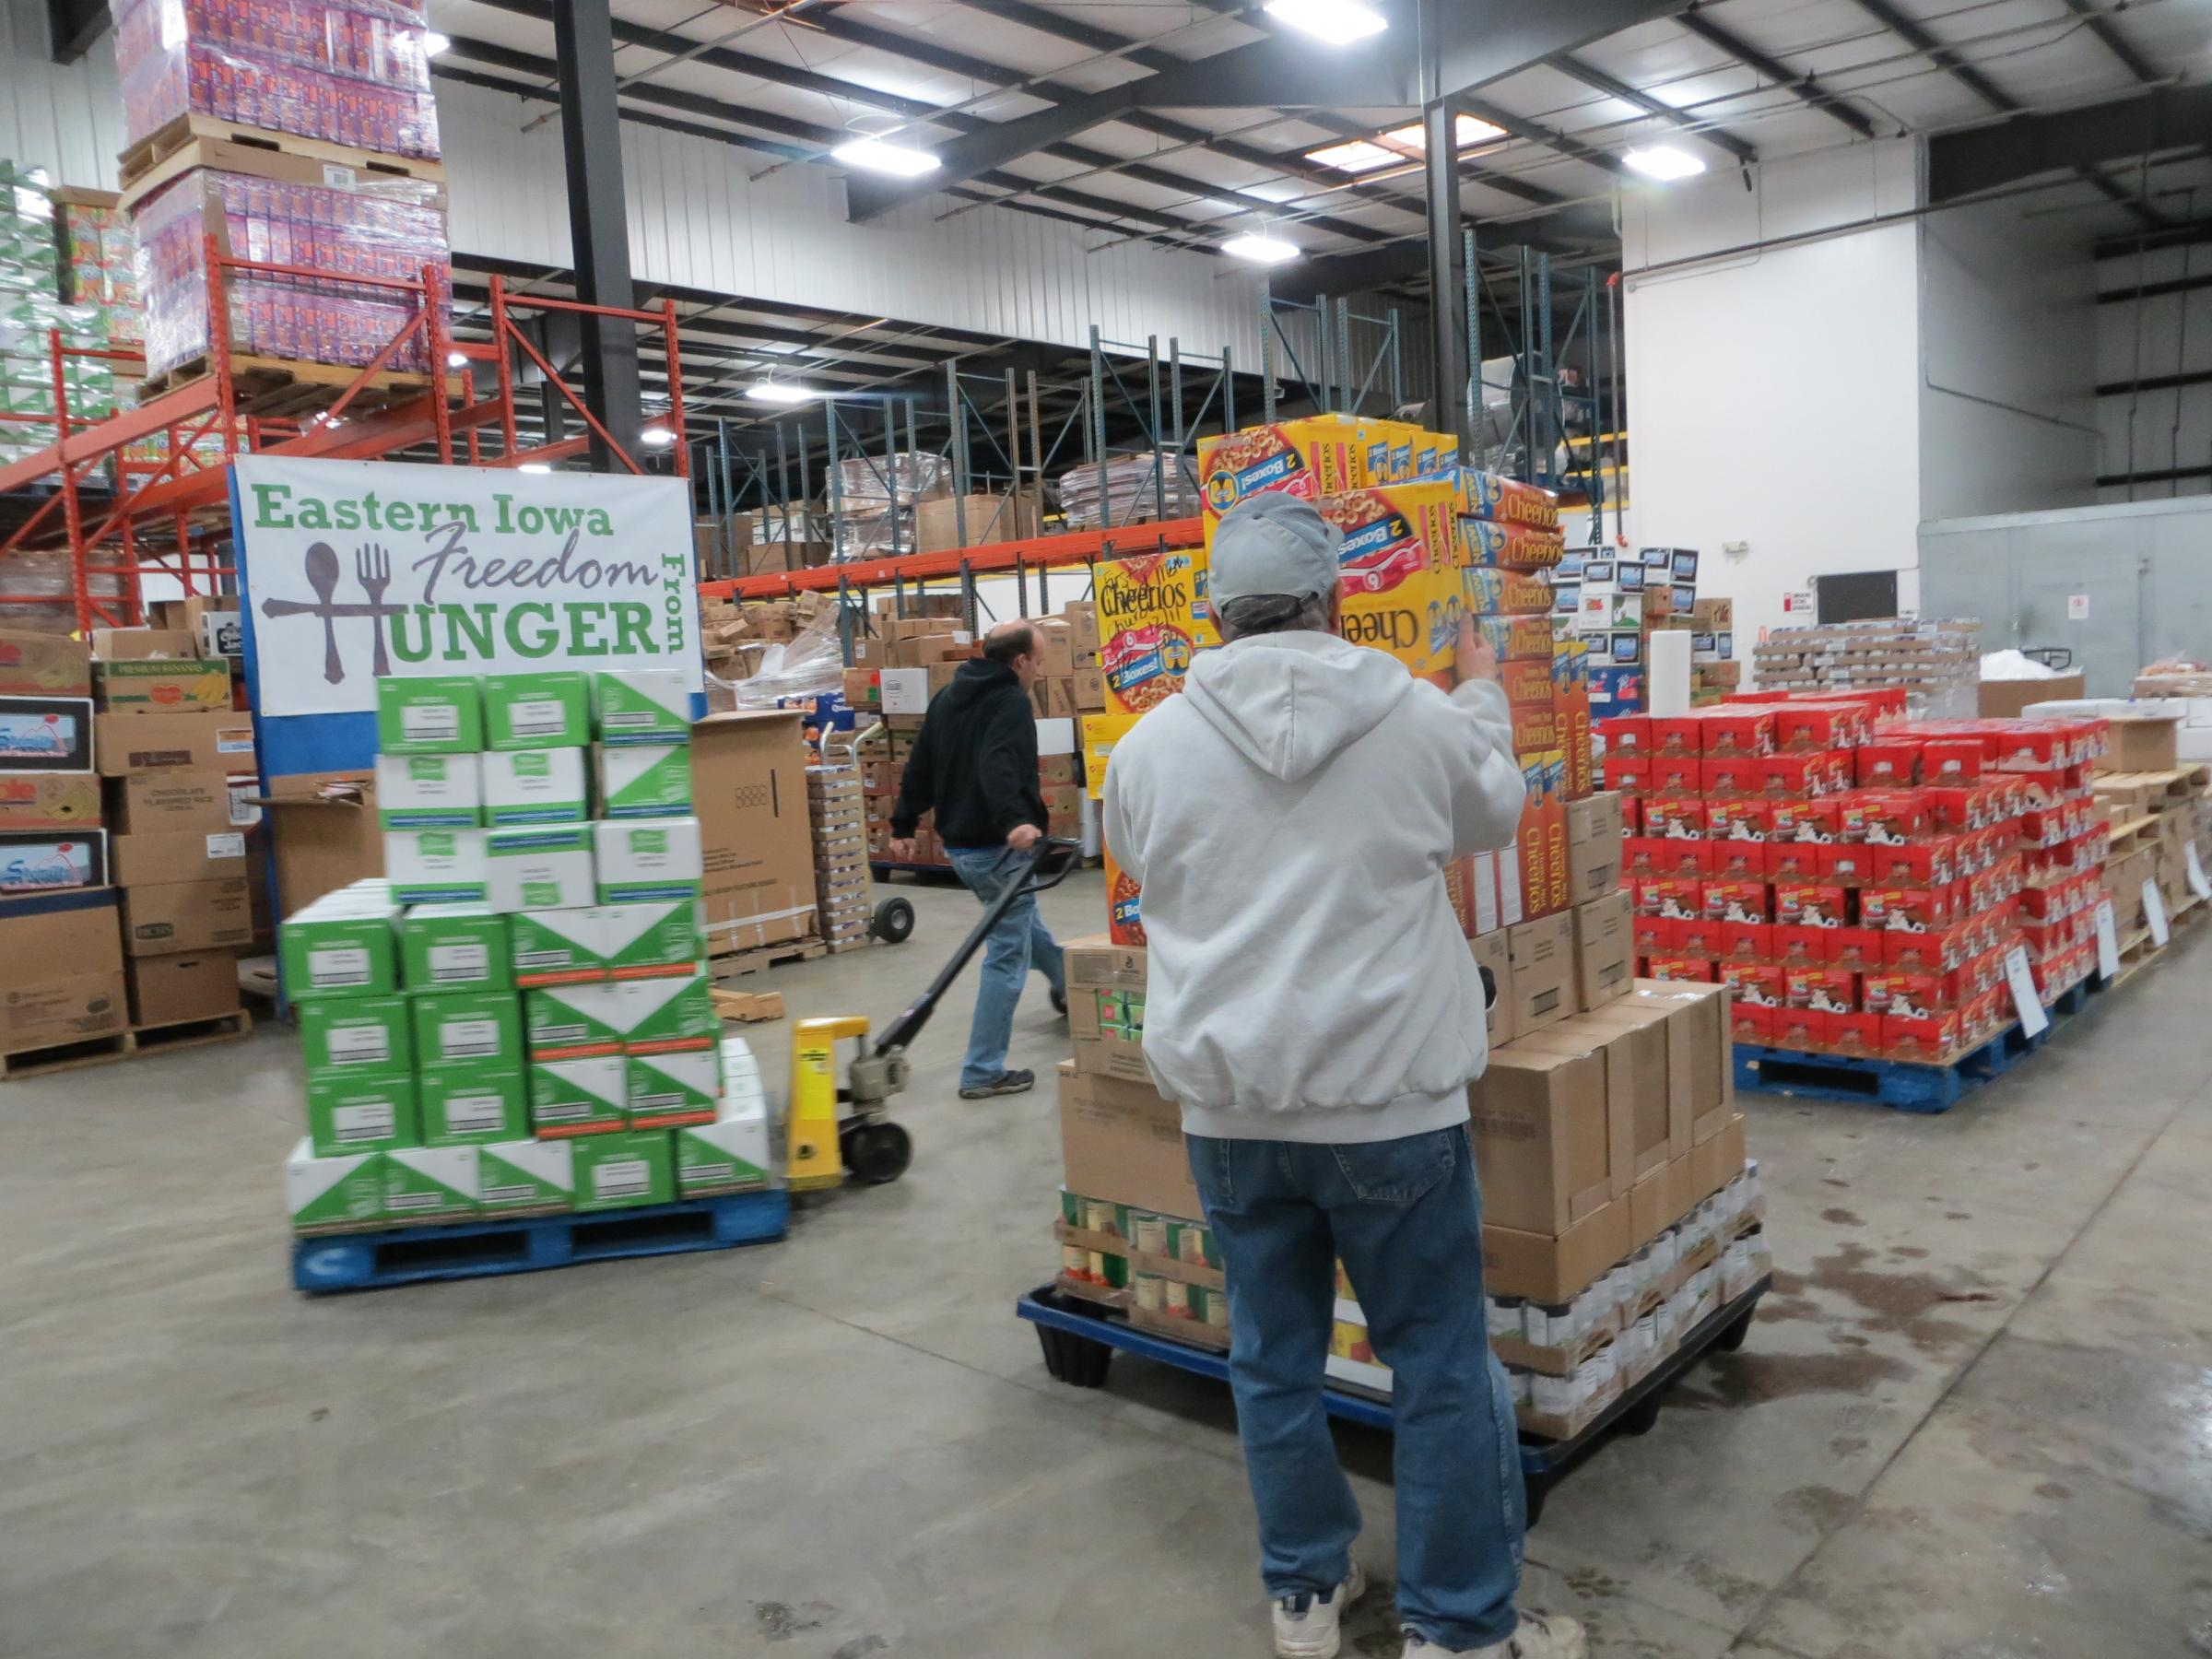 As holidays approach, Iowa food pantries see increased demand ...